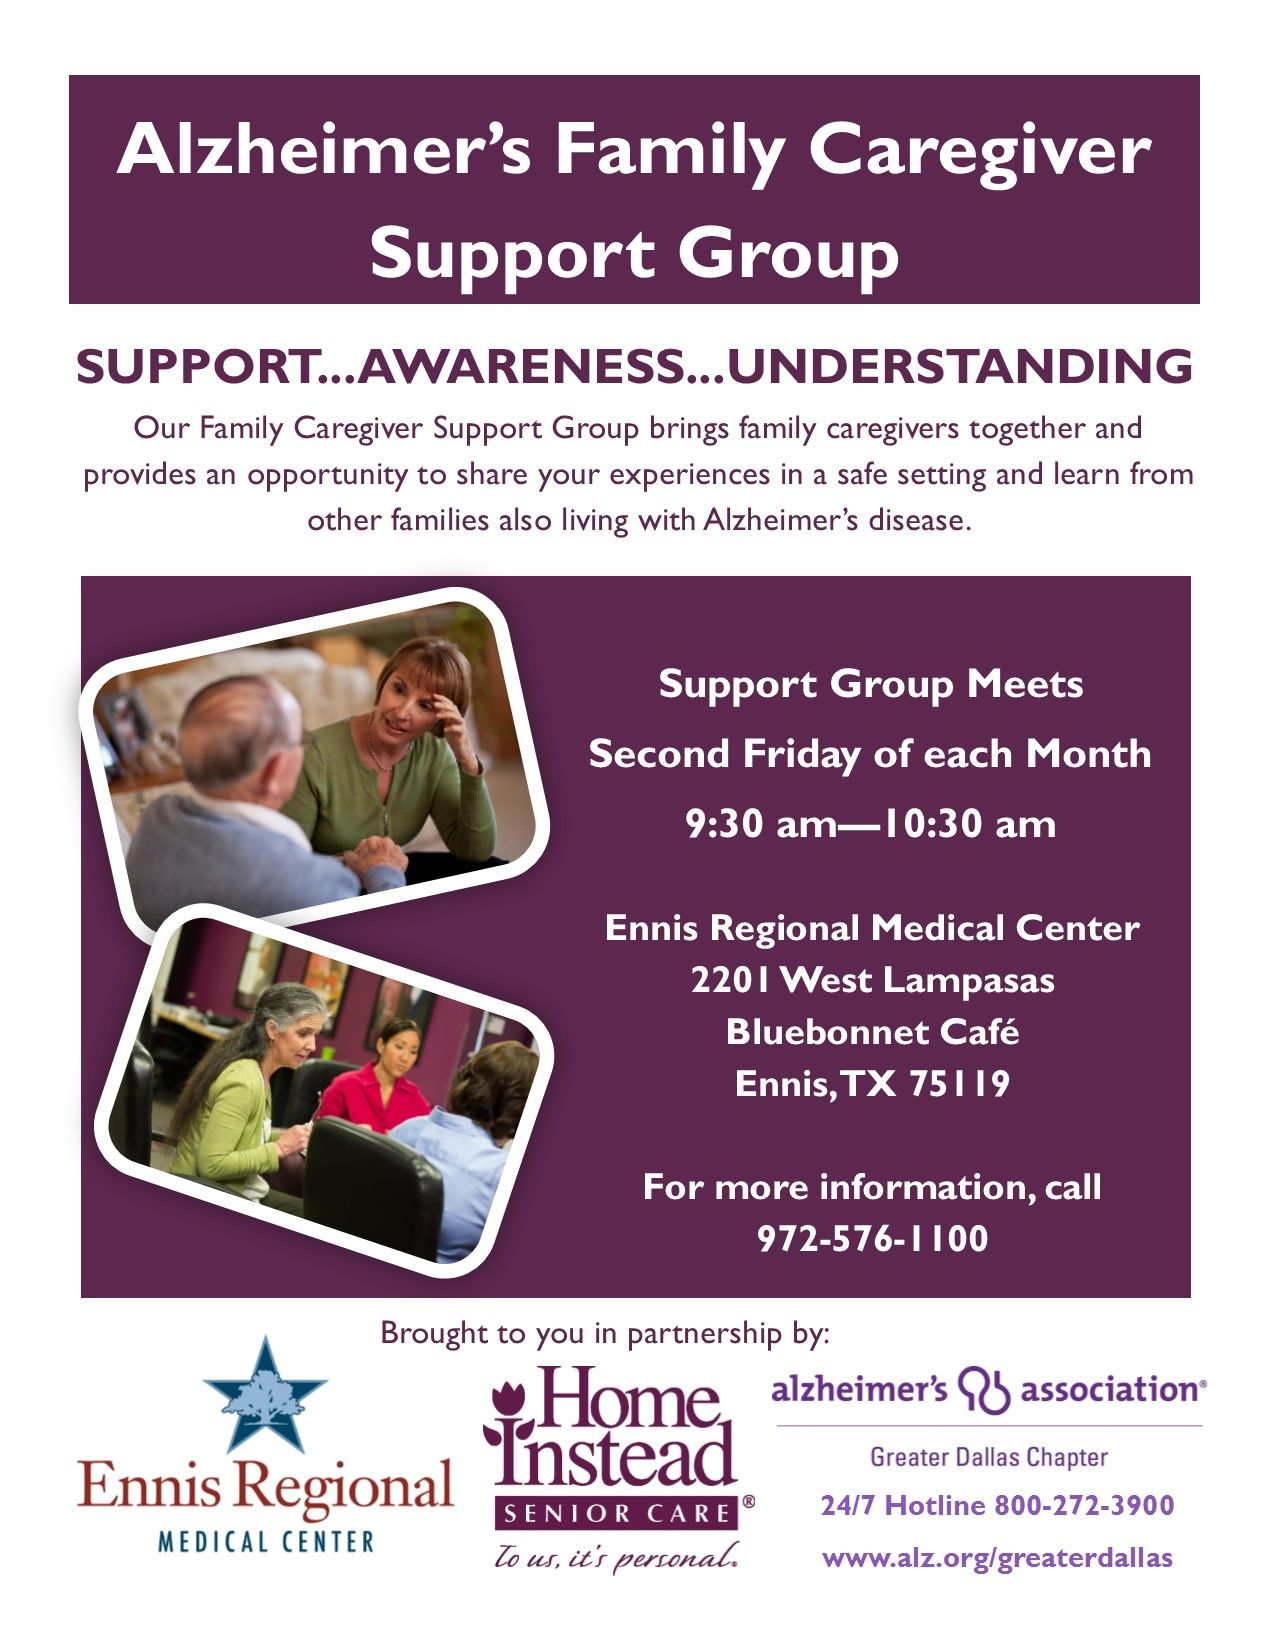 Alzheimer's Family Caregiver Support Group in Ennis, TX on ...